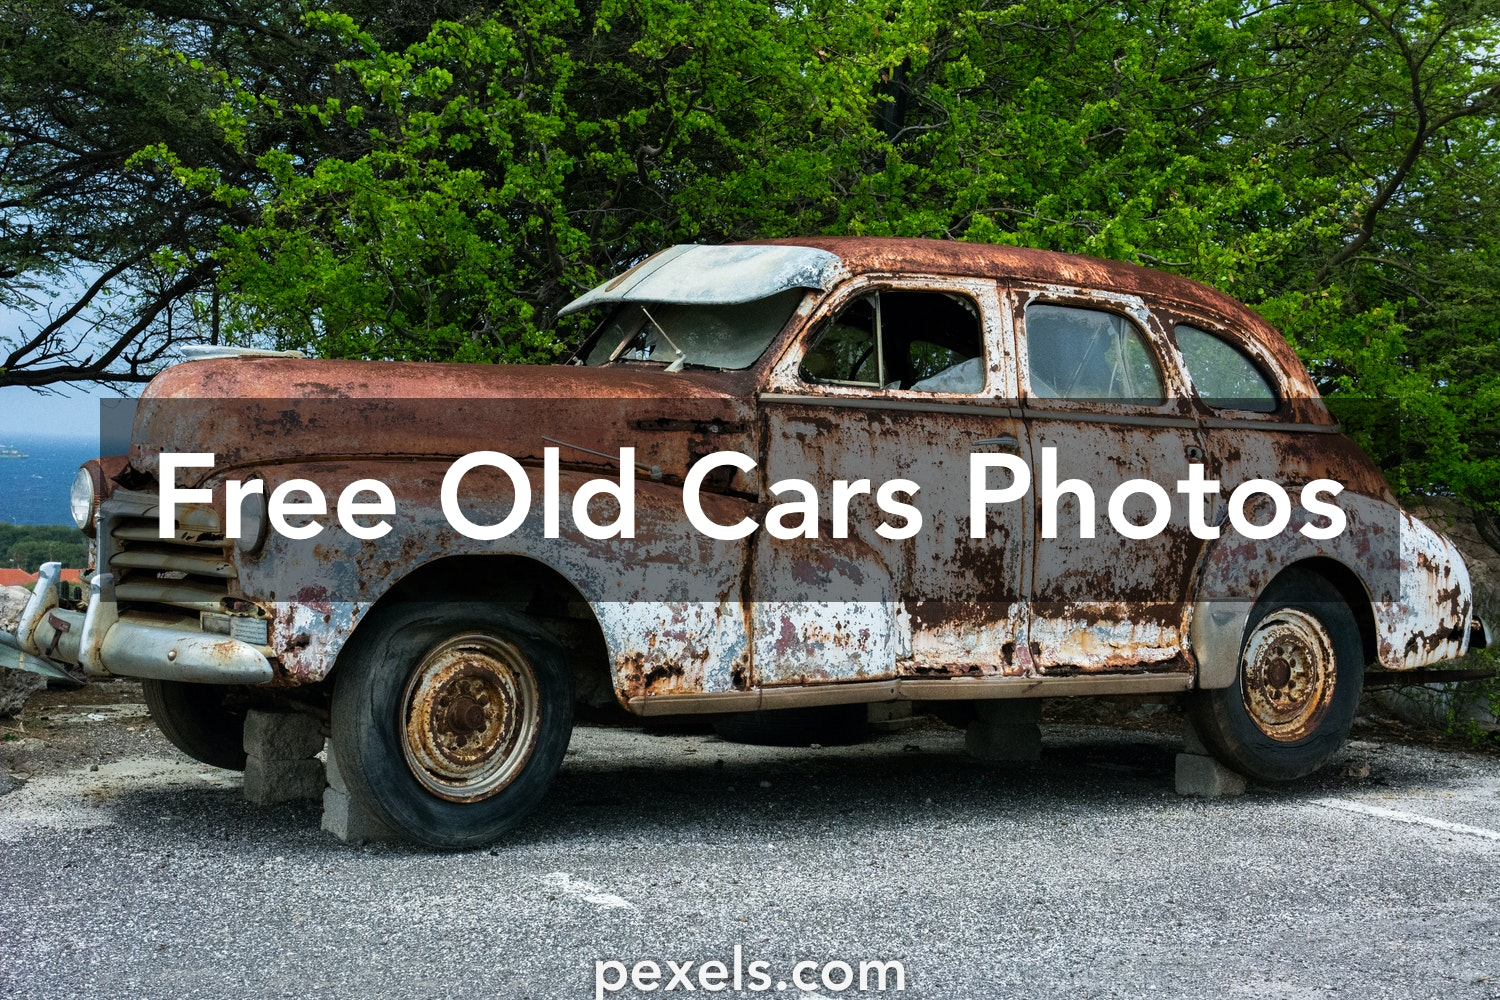 Free stock photos of old cars · Pexels